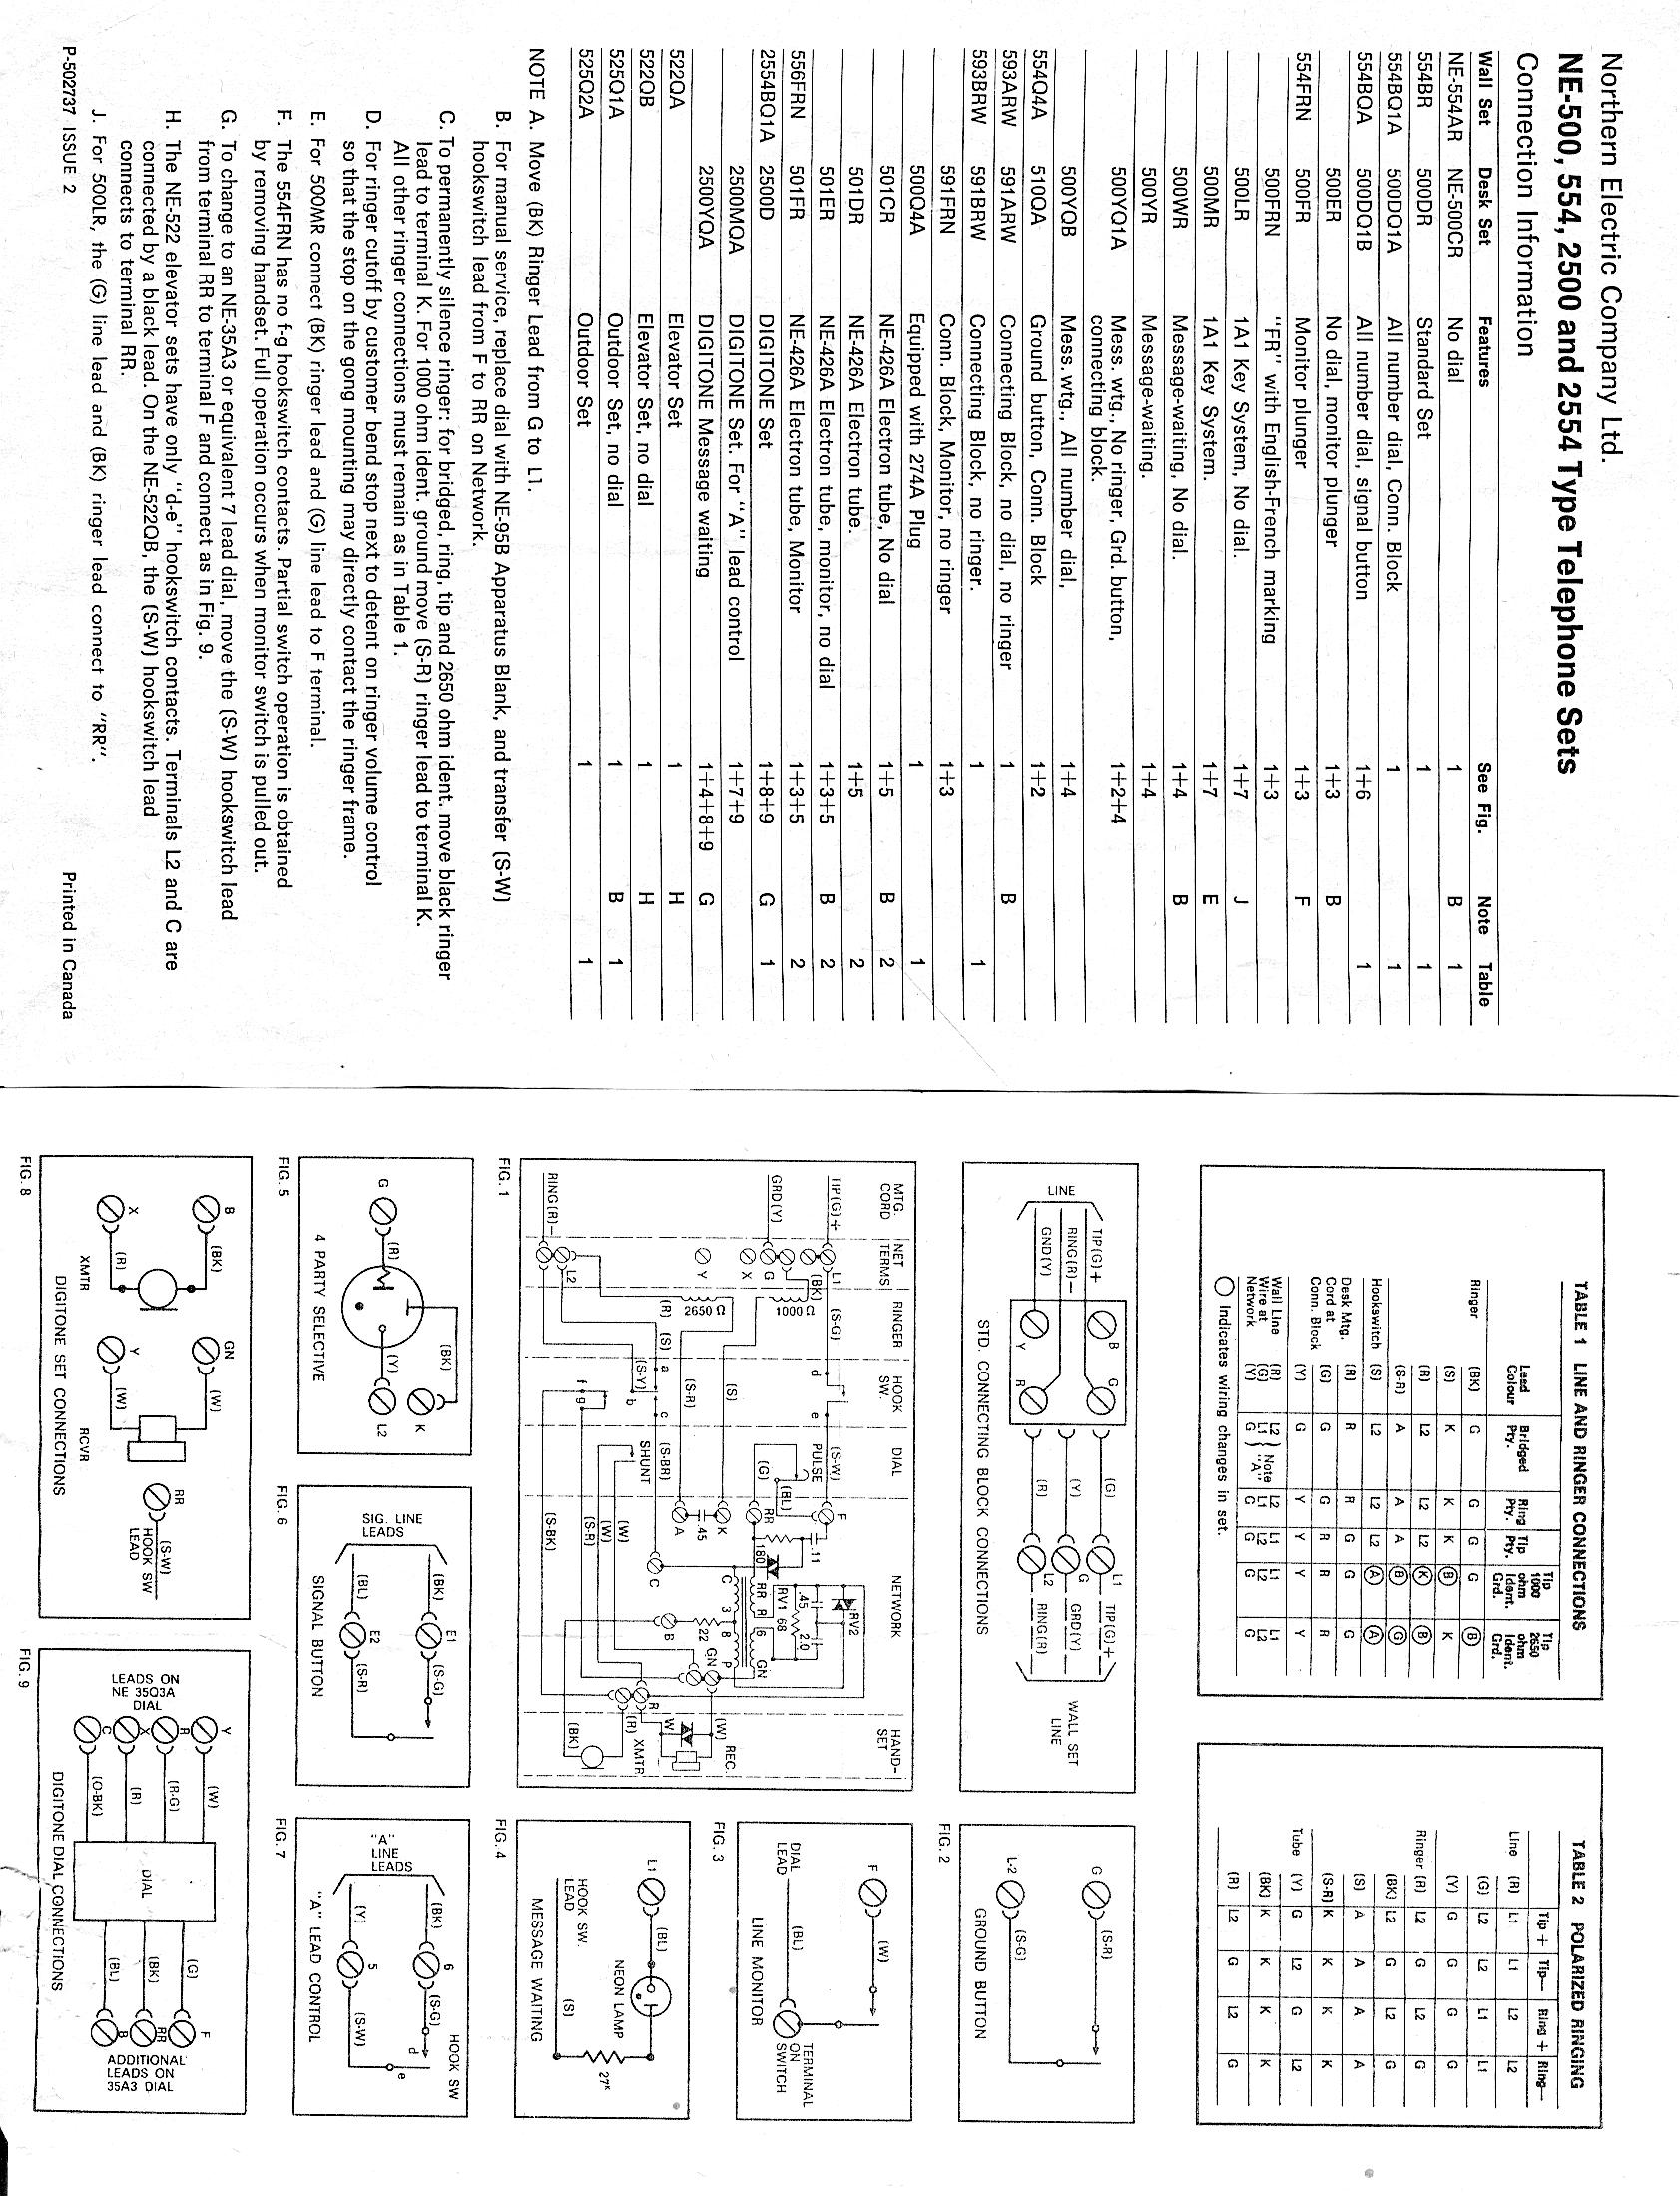 ne500 554 2500 2554 telephone technical references western electric 554 wiring diagram at gsmx.co